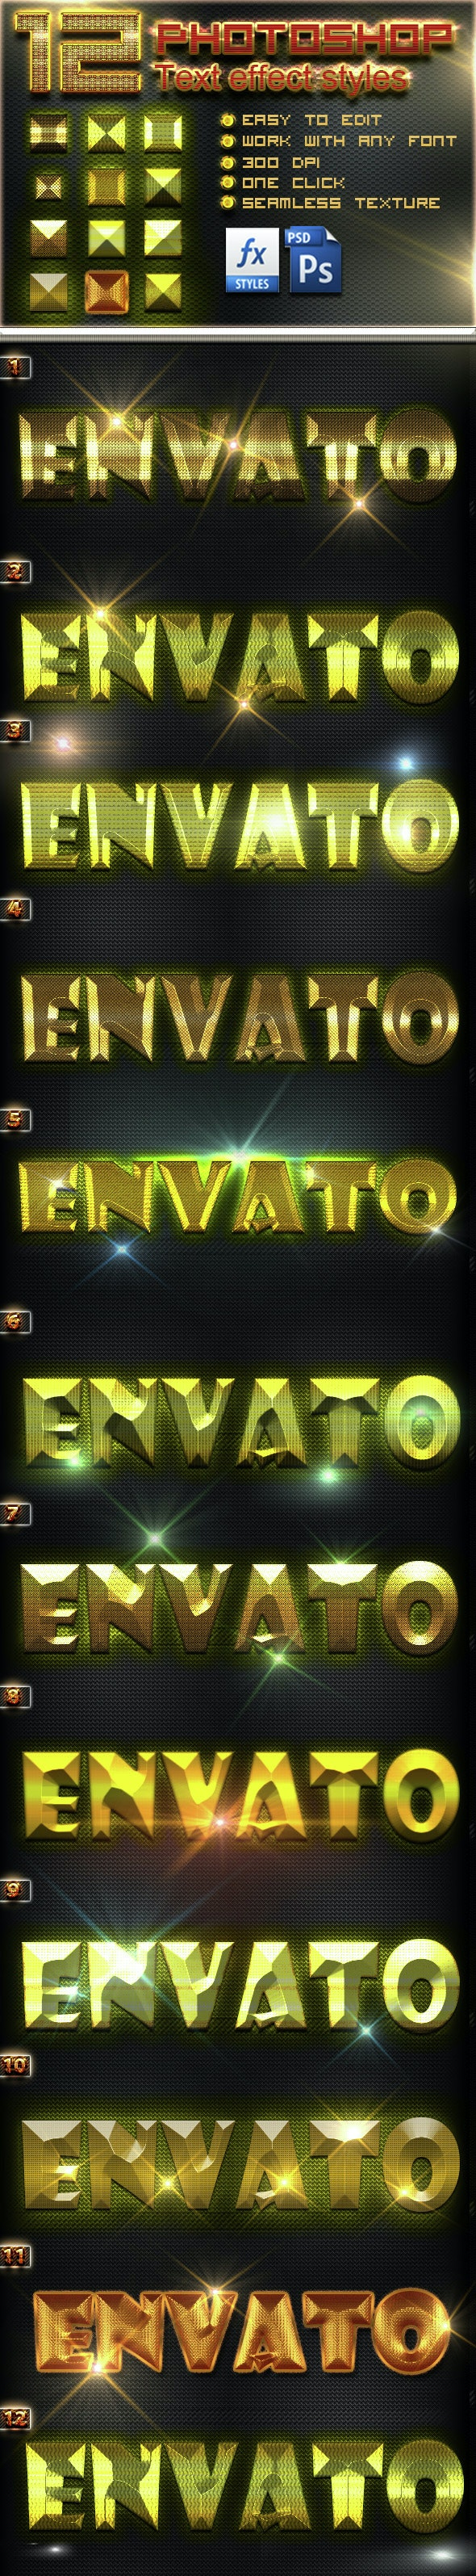 12 Photoshop GOLD Text Effect Styles Vol 13 - Text Effects Styles